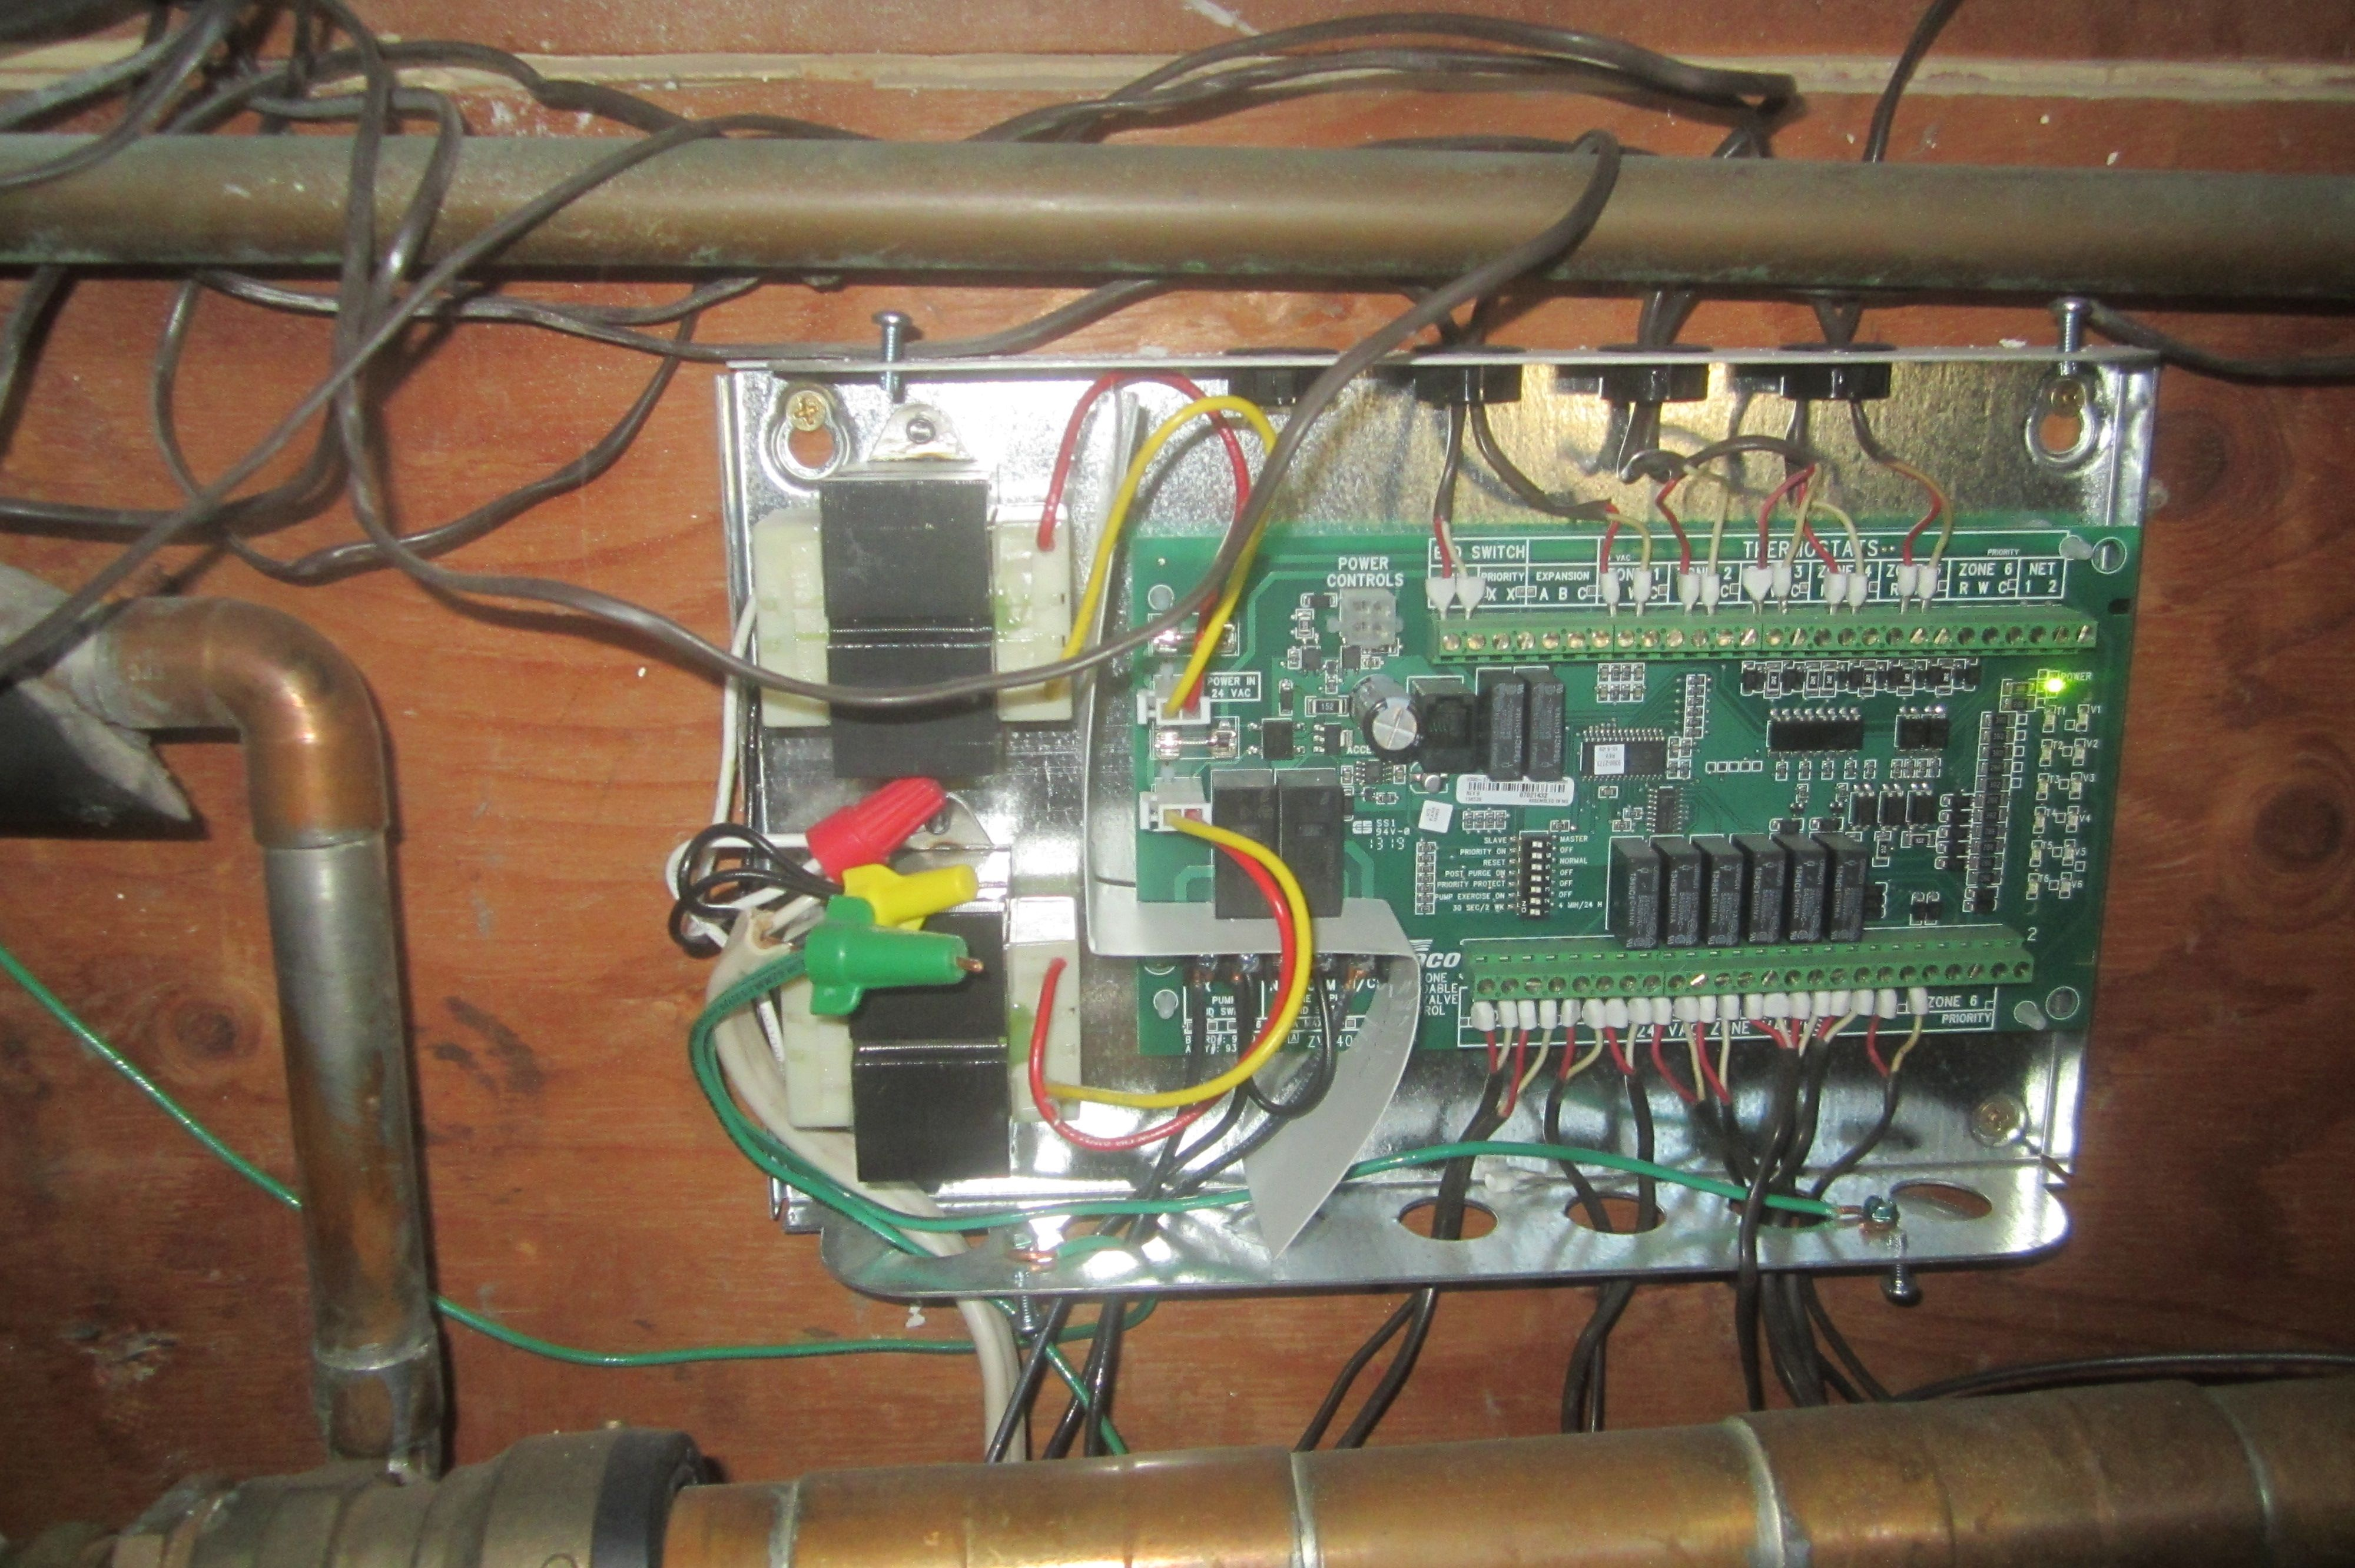 Taco Relay Wiring Diagram also Run A C Wire To 2 On A Taco Valve Other Location further Taco Sr502 Wiring Diagram To Nest as well Watch in addition 2004 Suzuki Verona Fuse Box Diagram. on taco sr502 wiring diagram